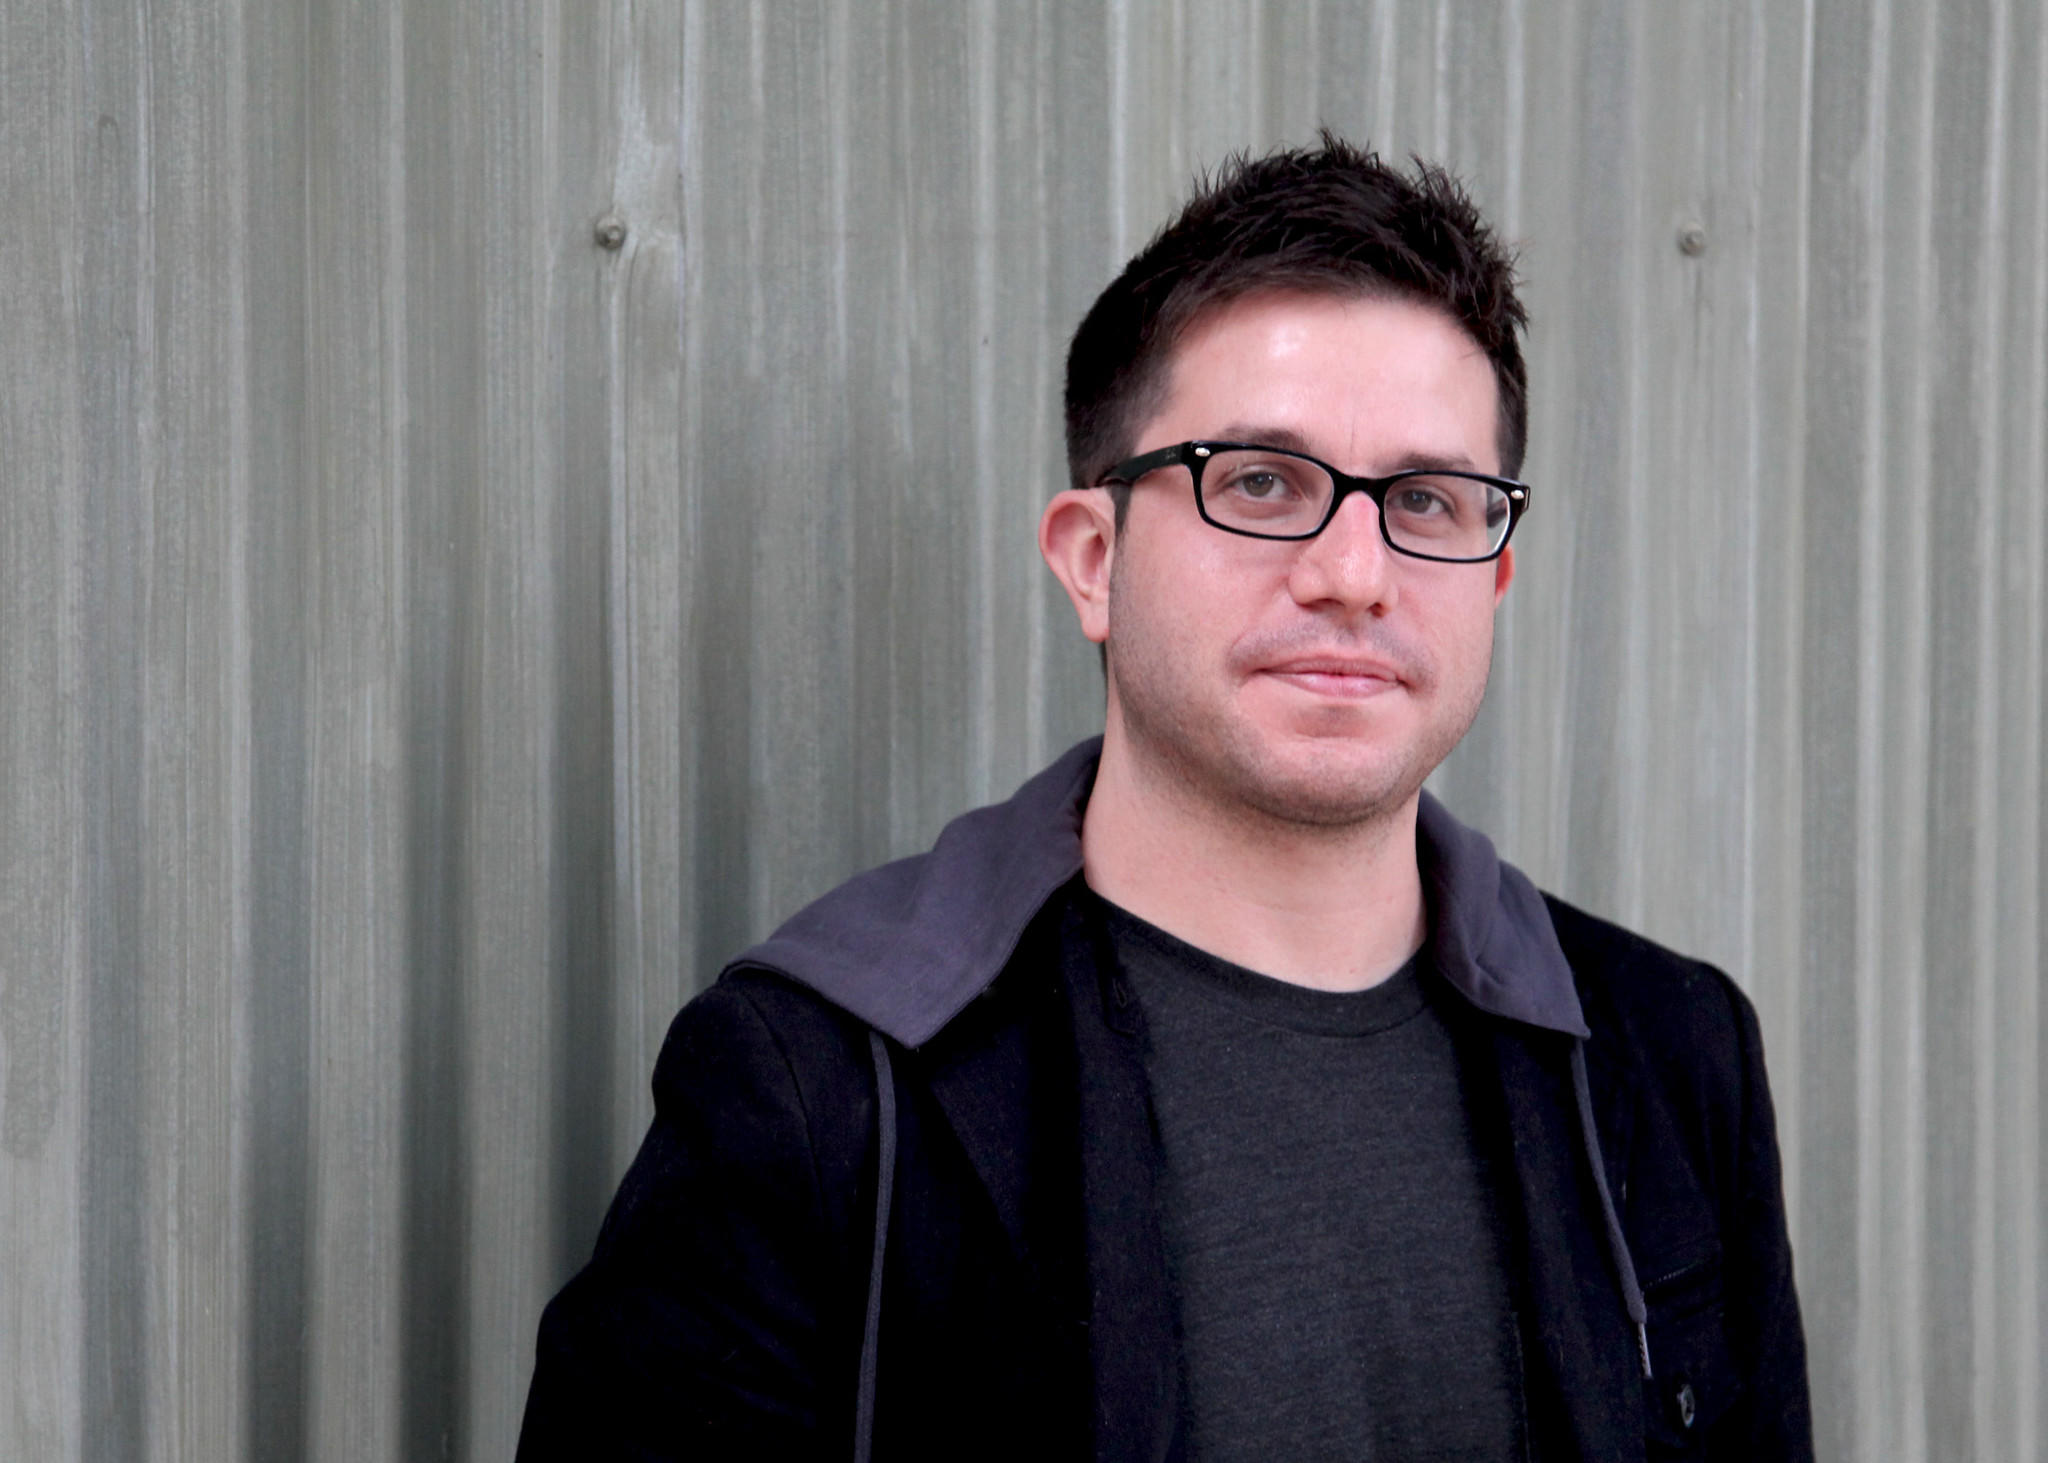 justin lader the discoveryjustin lader the discovery, justin lader writer, justin lader the one i love, justin lader, justin lader interview, justin lader viola, justin lader twitter, justin lader violin, justin lader age, justin lader eugene